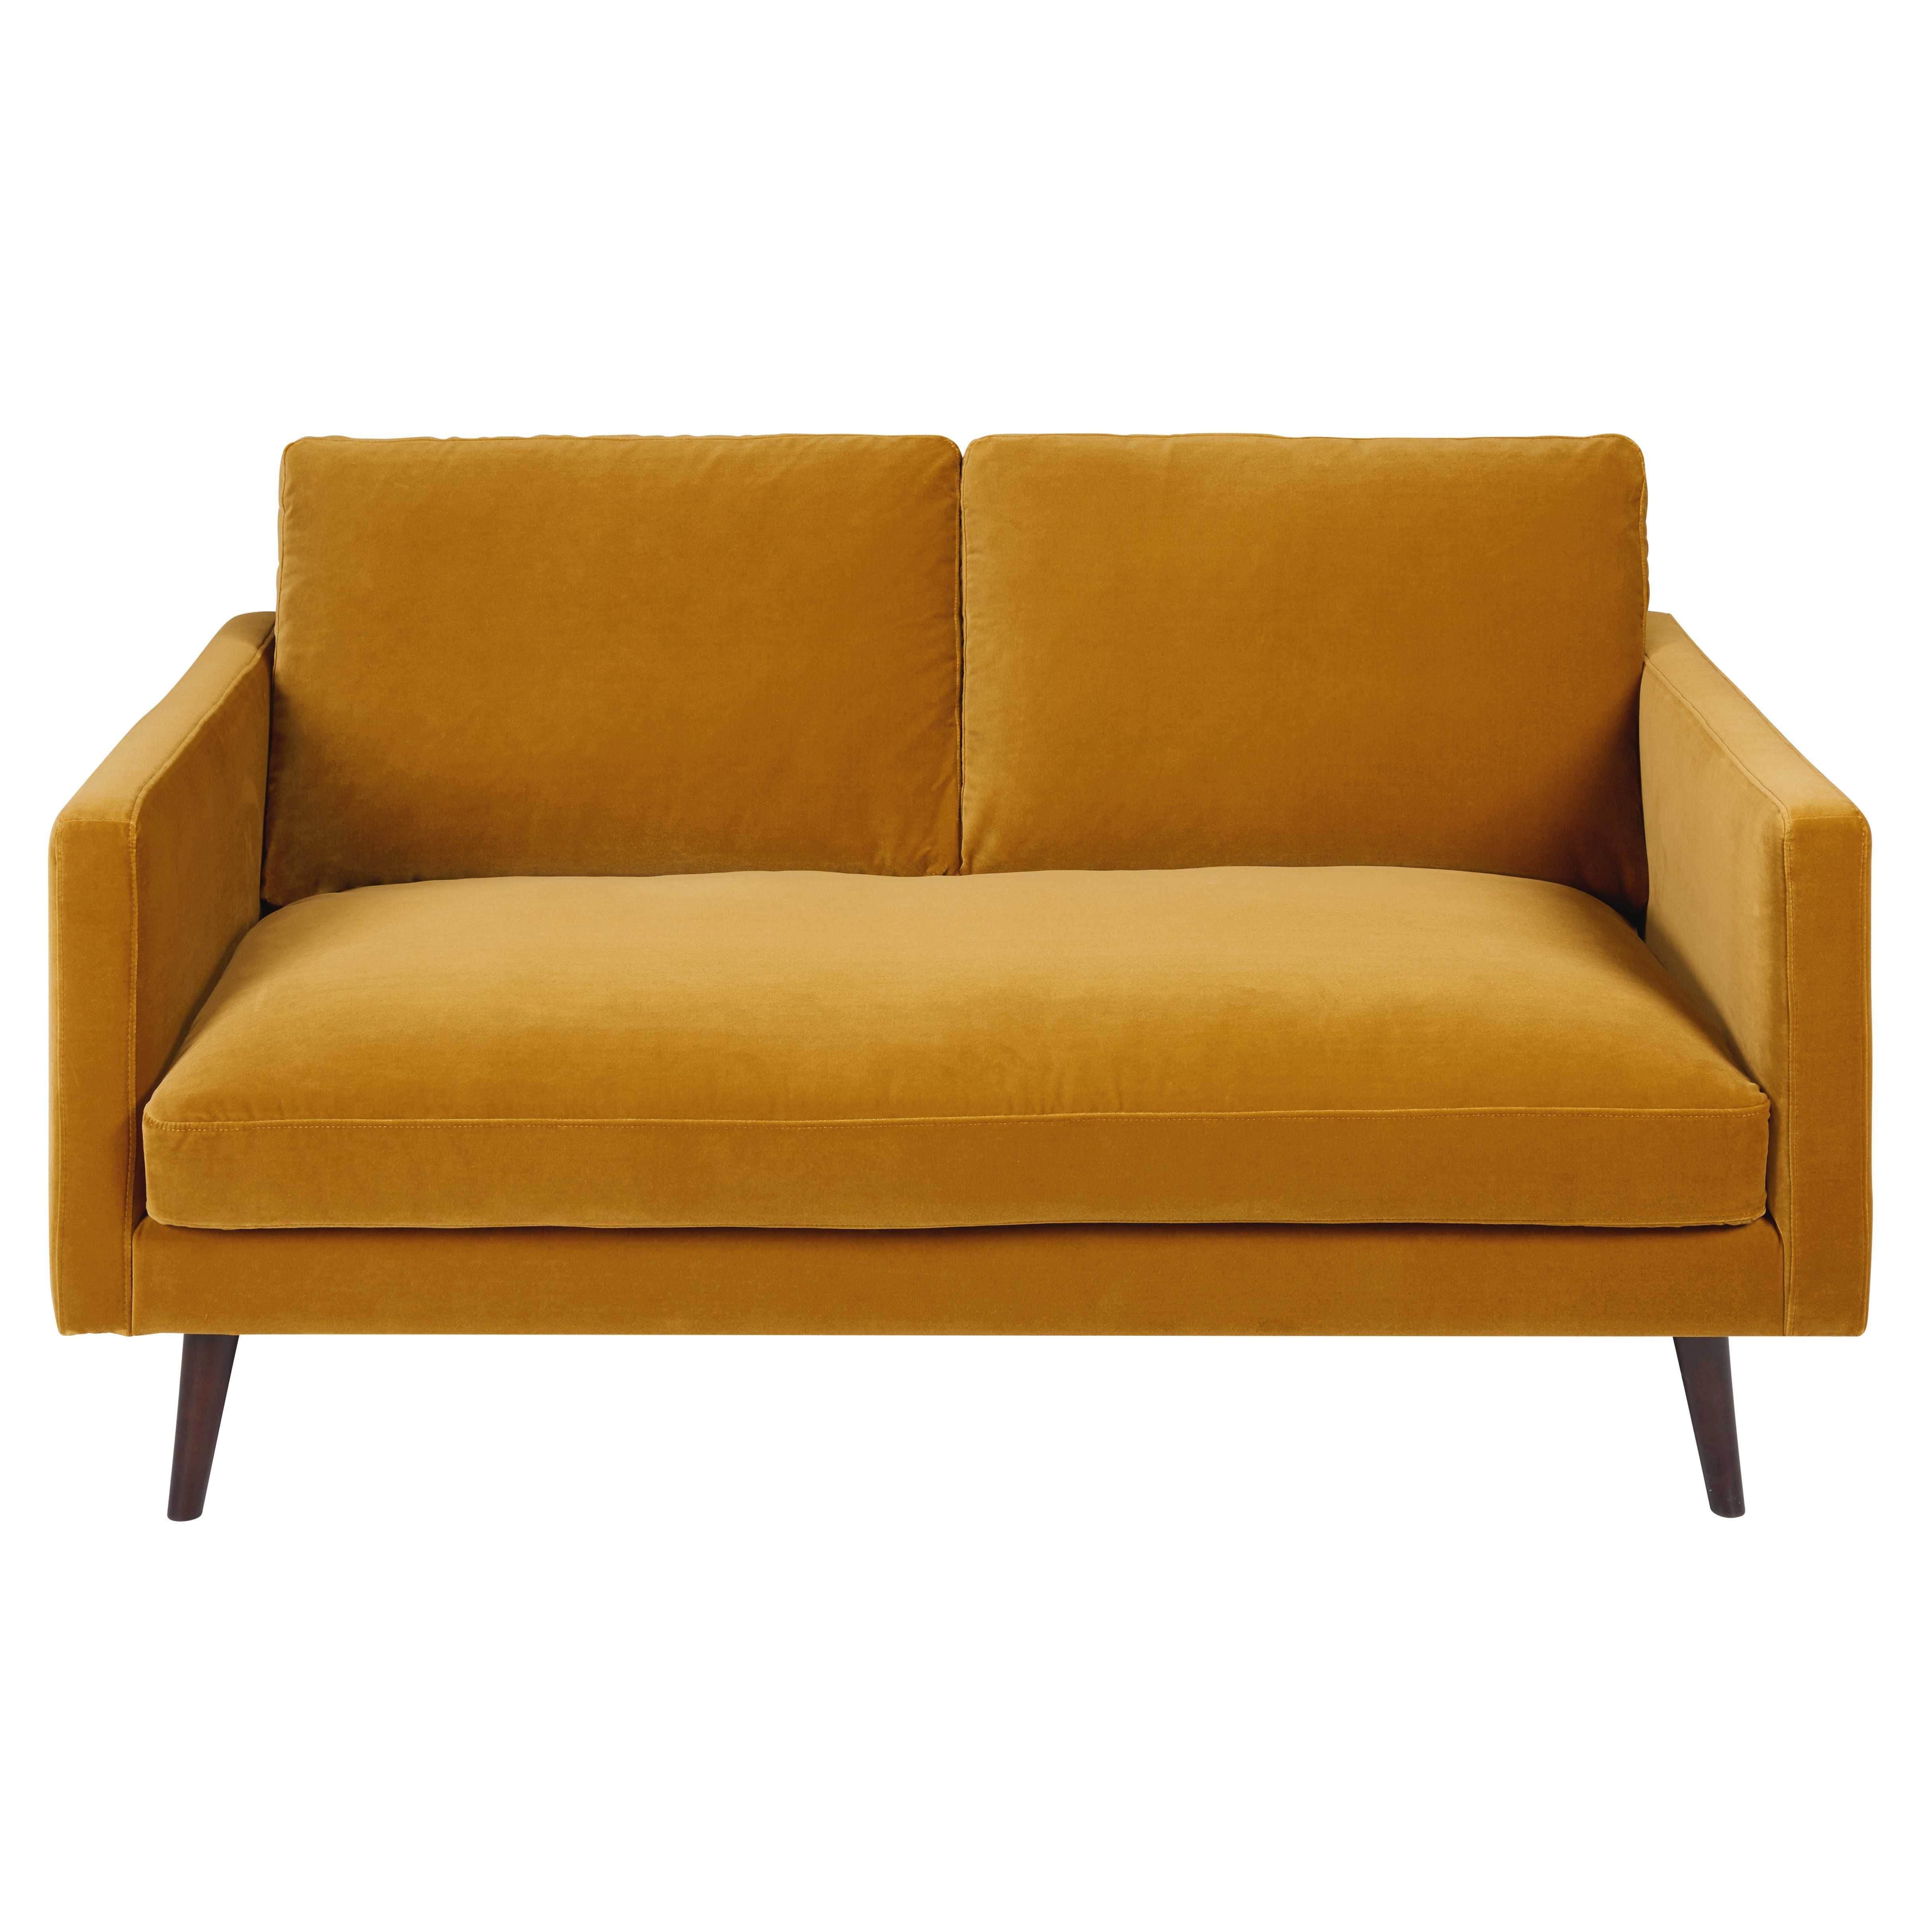 Mustard Yellow 2 Seater Velvet Sofa Kant Fauteuil En Cuir Marron Canape Canape Moutarde